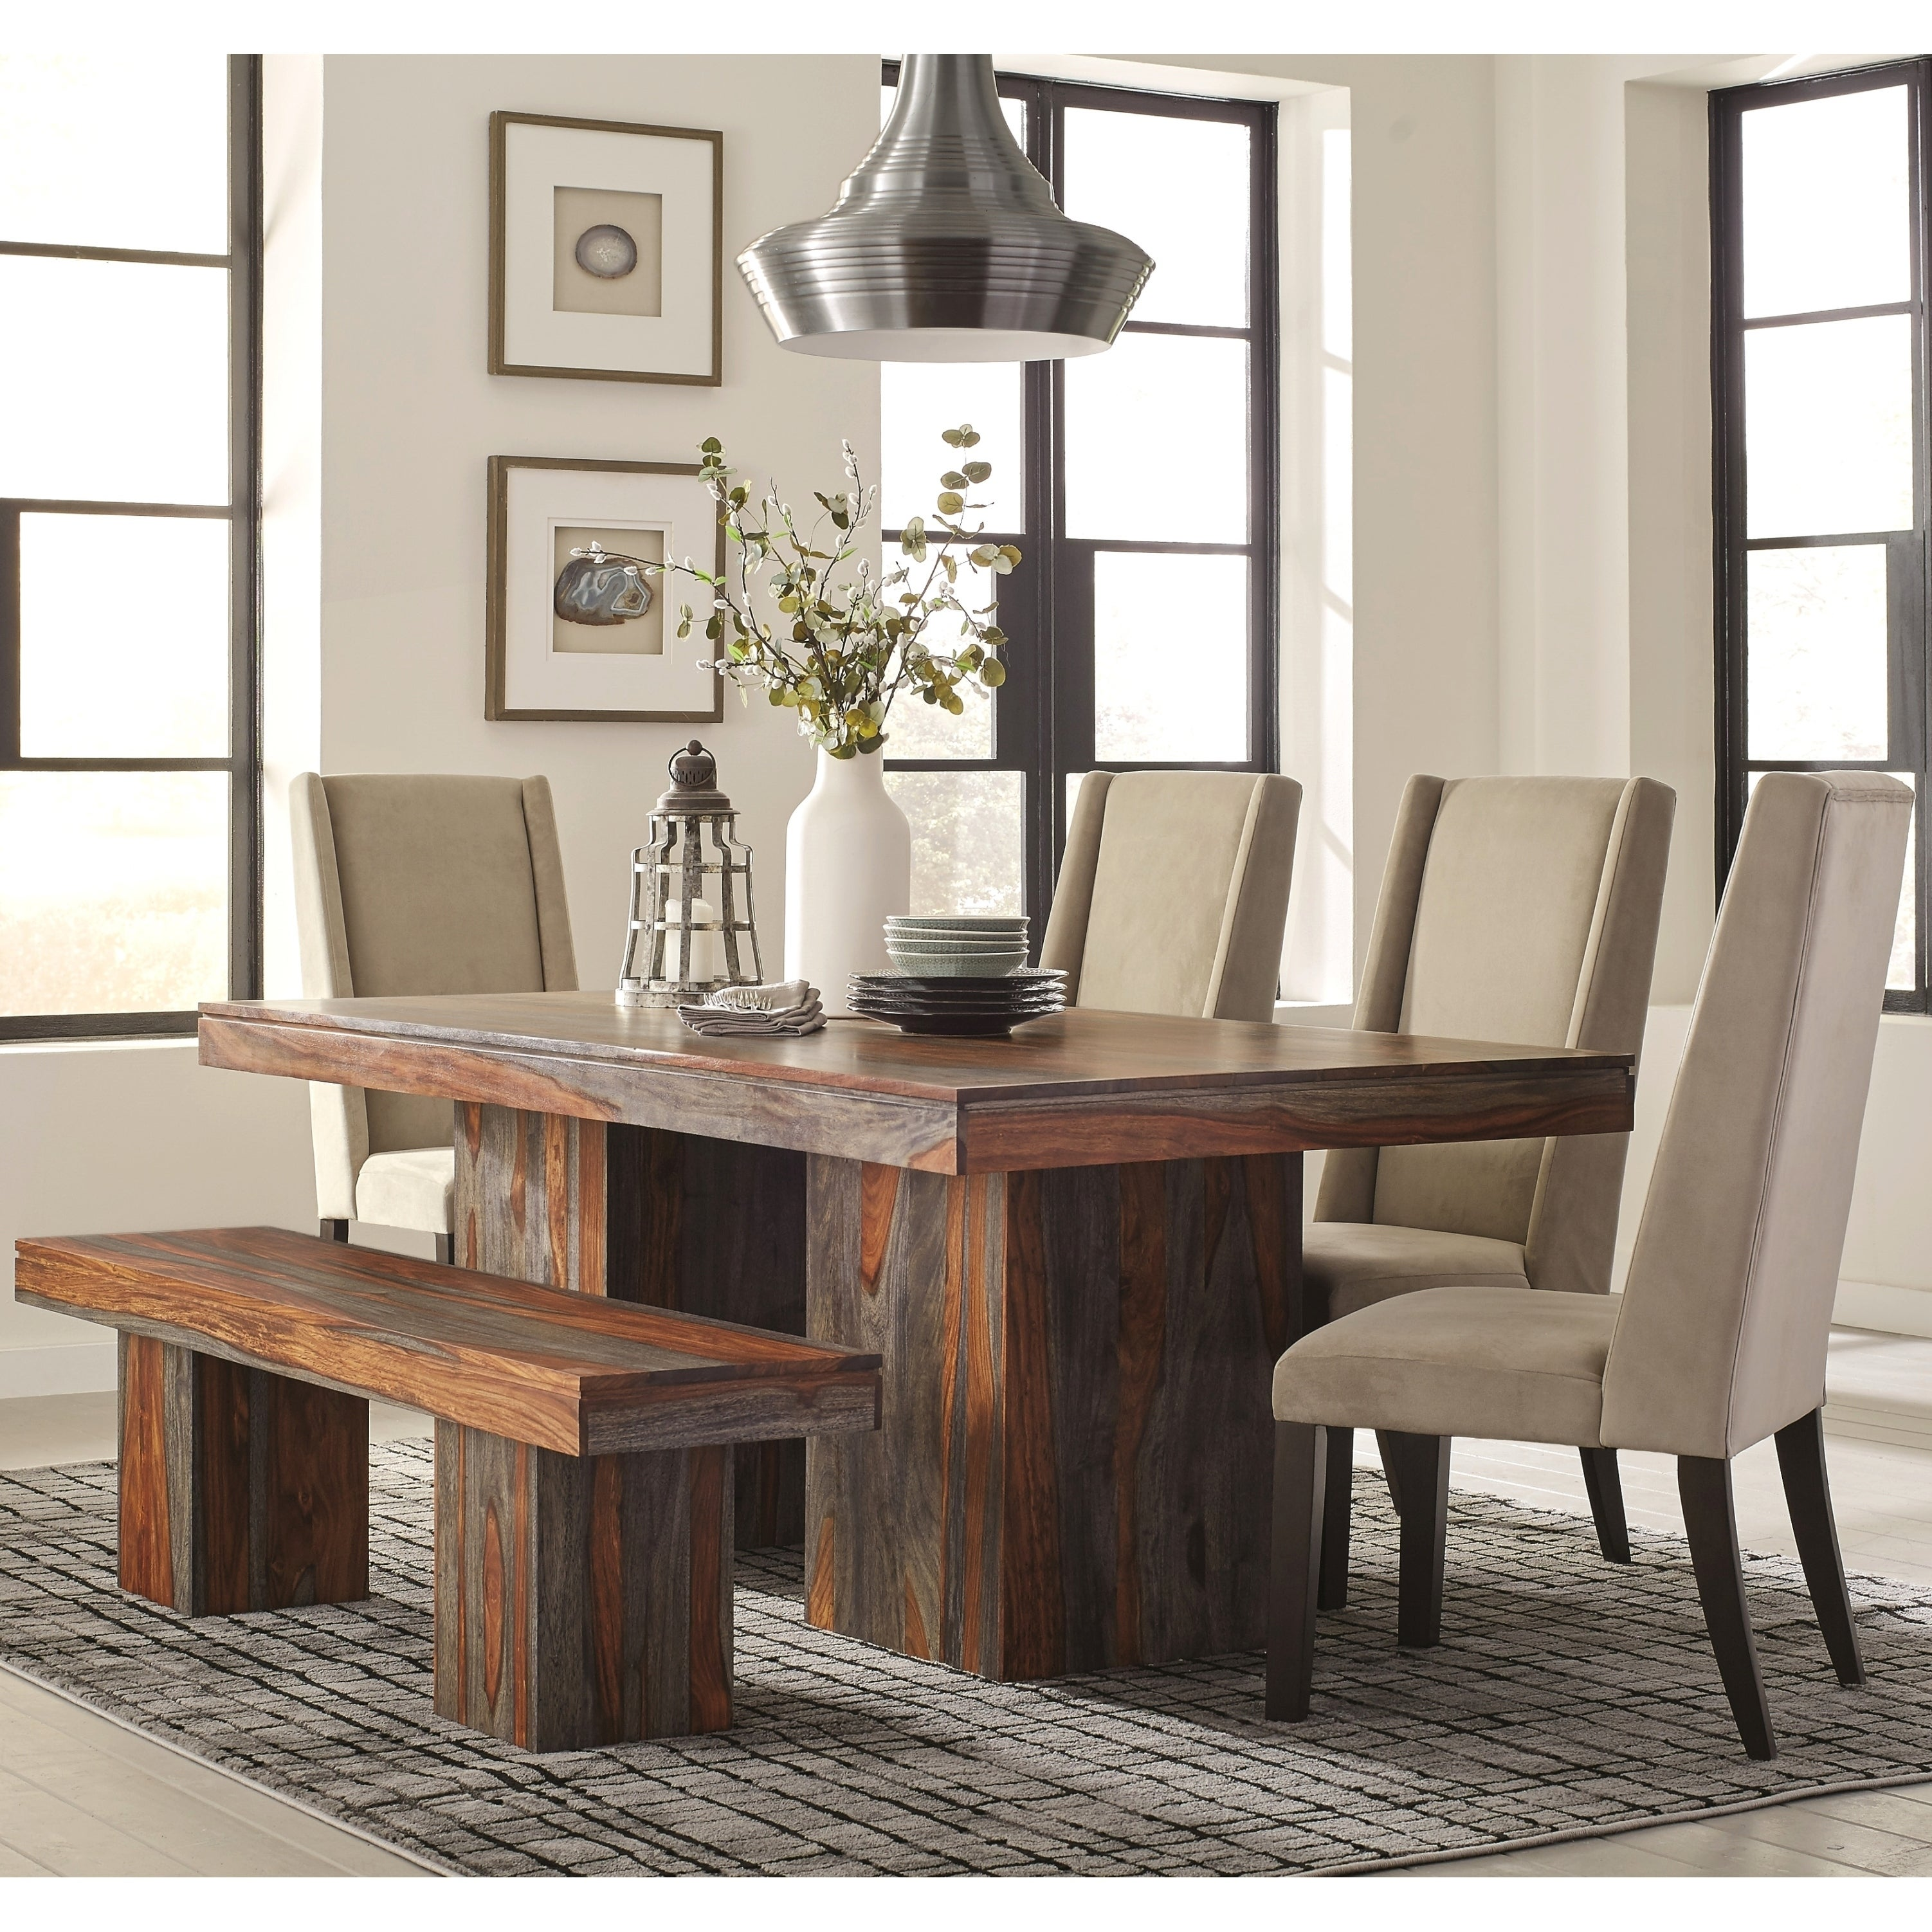 Shop modern bold design sheesham wood dining set with upholstered chairs and bench free shipping today overstock com 19883729